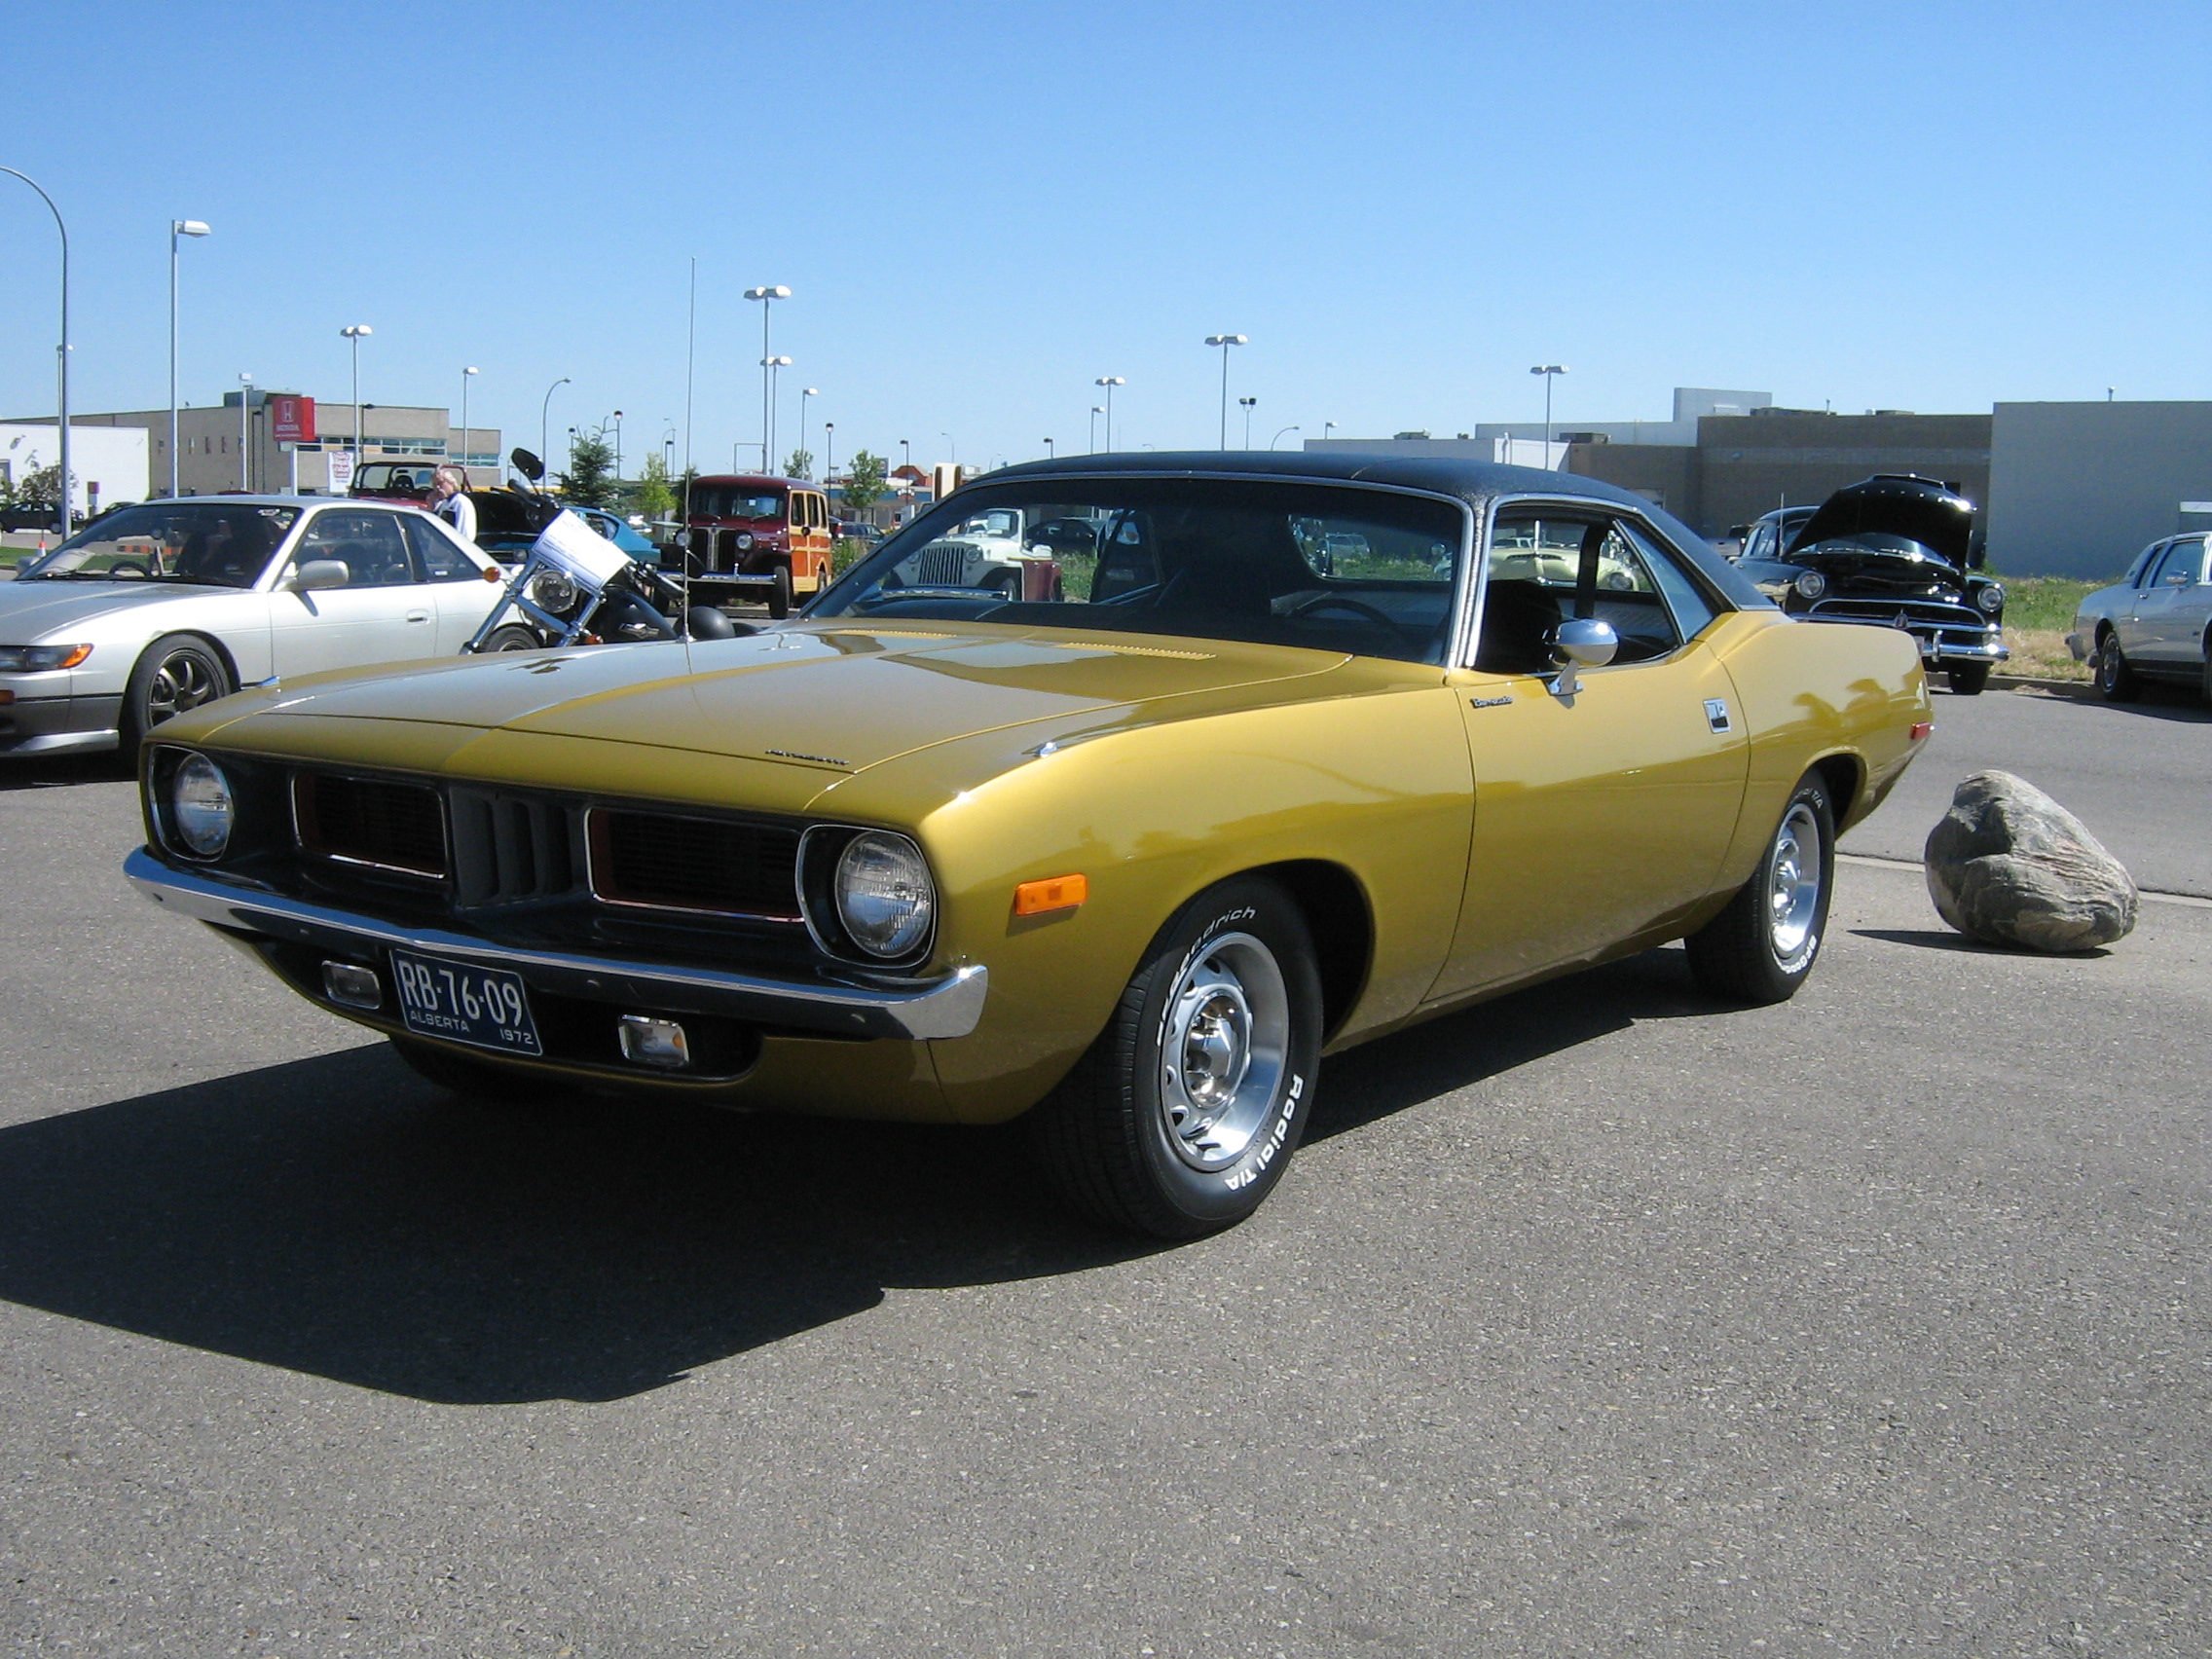 500 best plymouth barracuda 1 images on pinterest plymouth barracuda mopar and american muscle cars